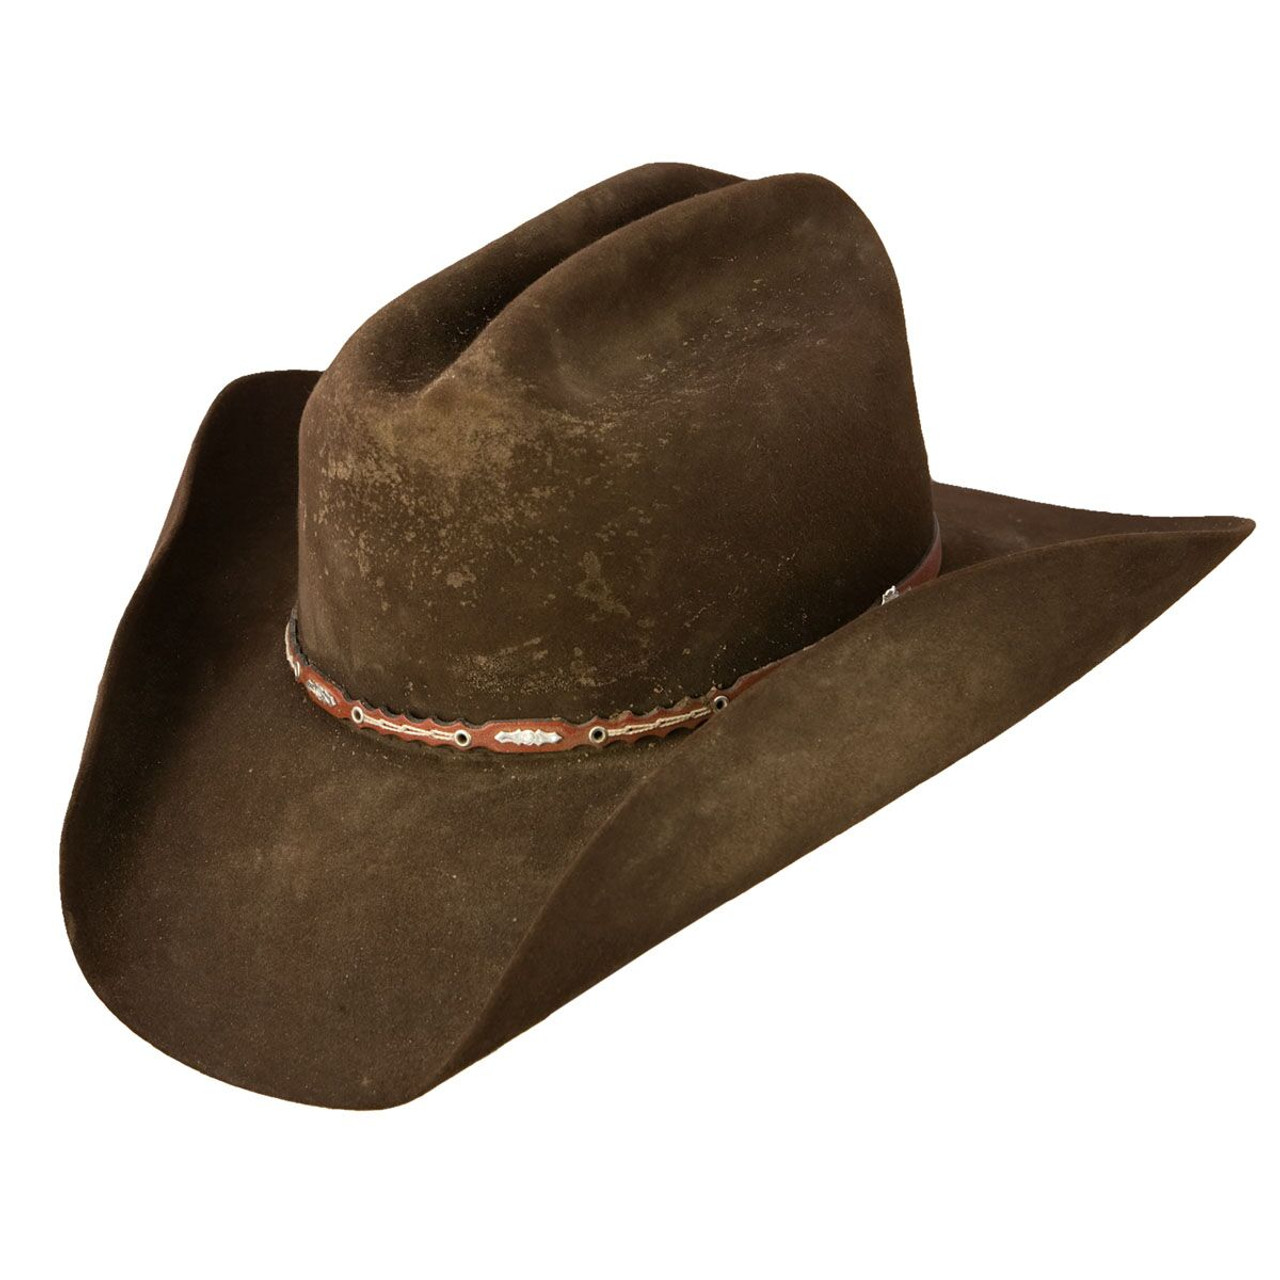 42093a68cee Stetson Boss of the Plains Felt Cowboy Hat - Herbert s Boots and Western  Wear